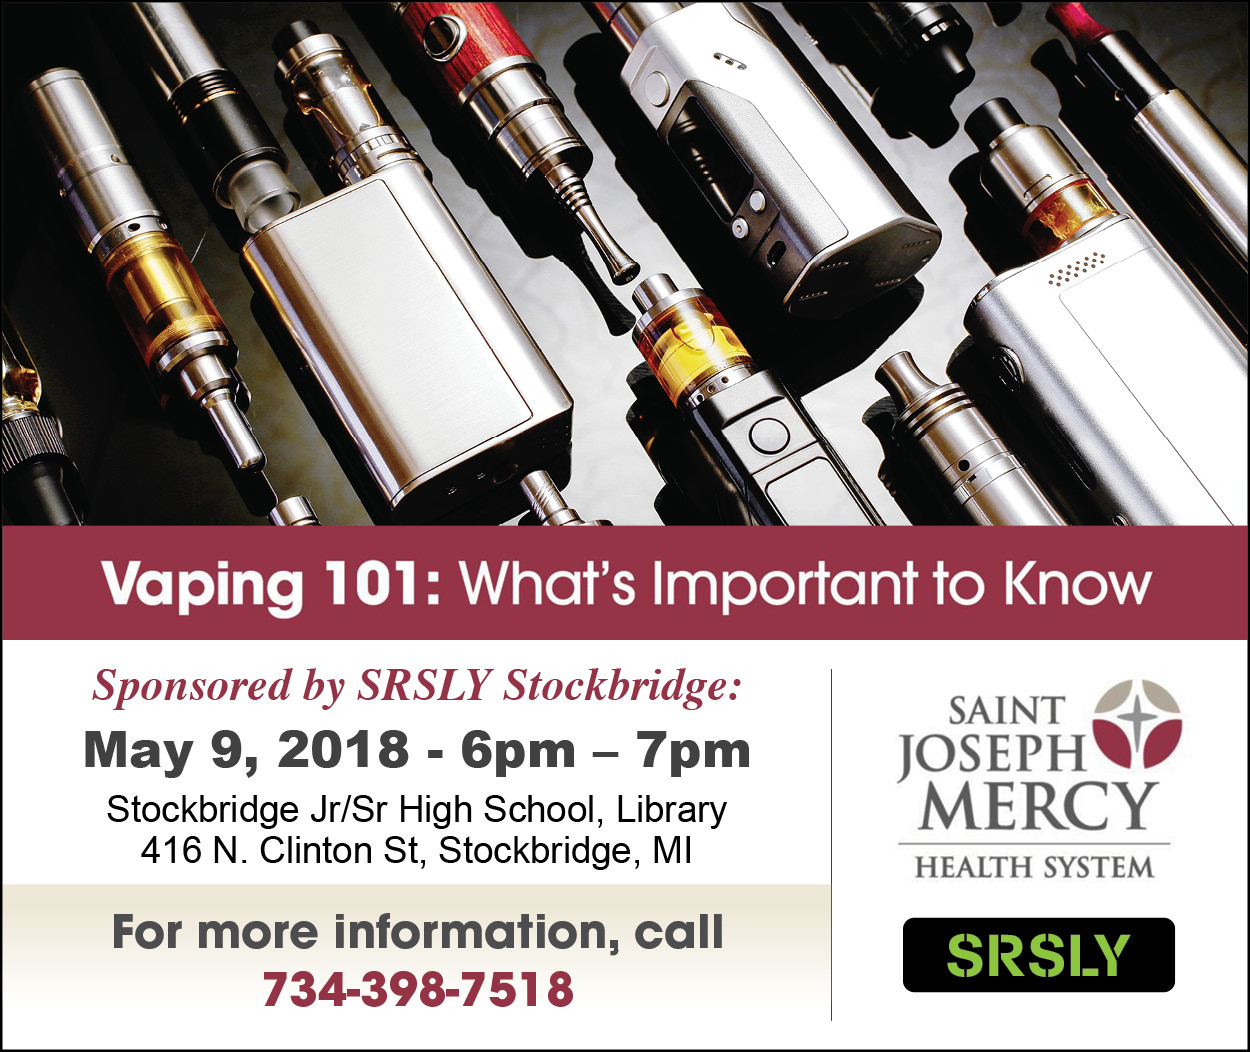 Vaping 101: What's Important to Know - SRSLY Stockbridge